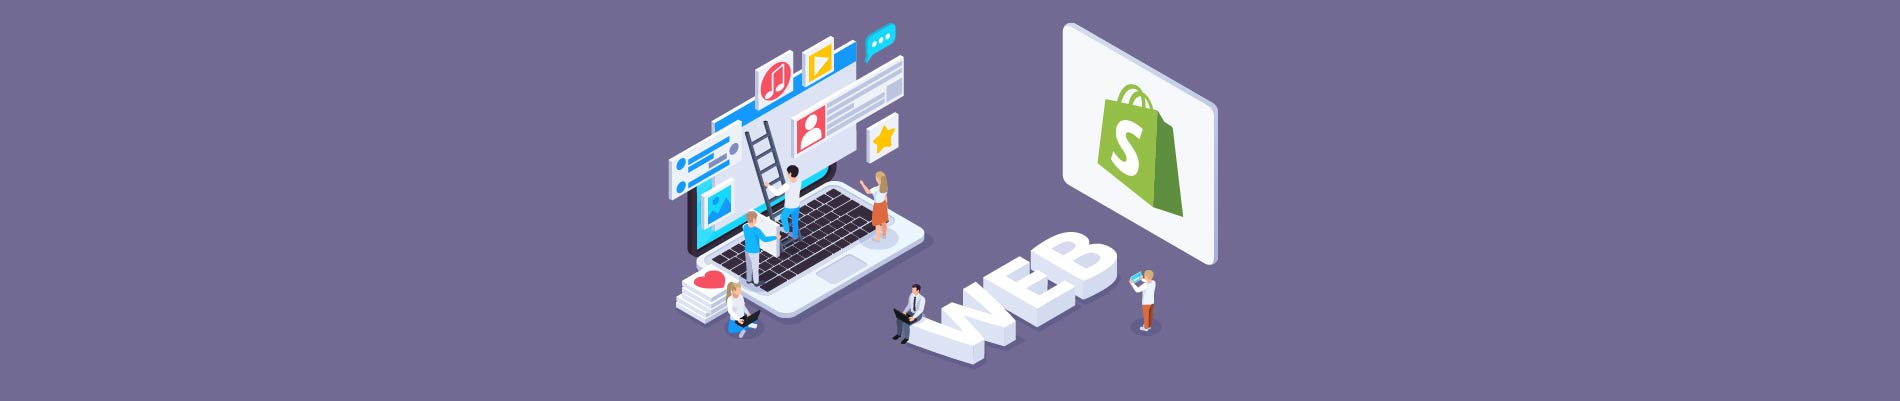 the best shopify free themes in 2021